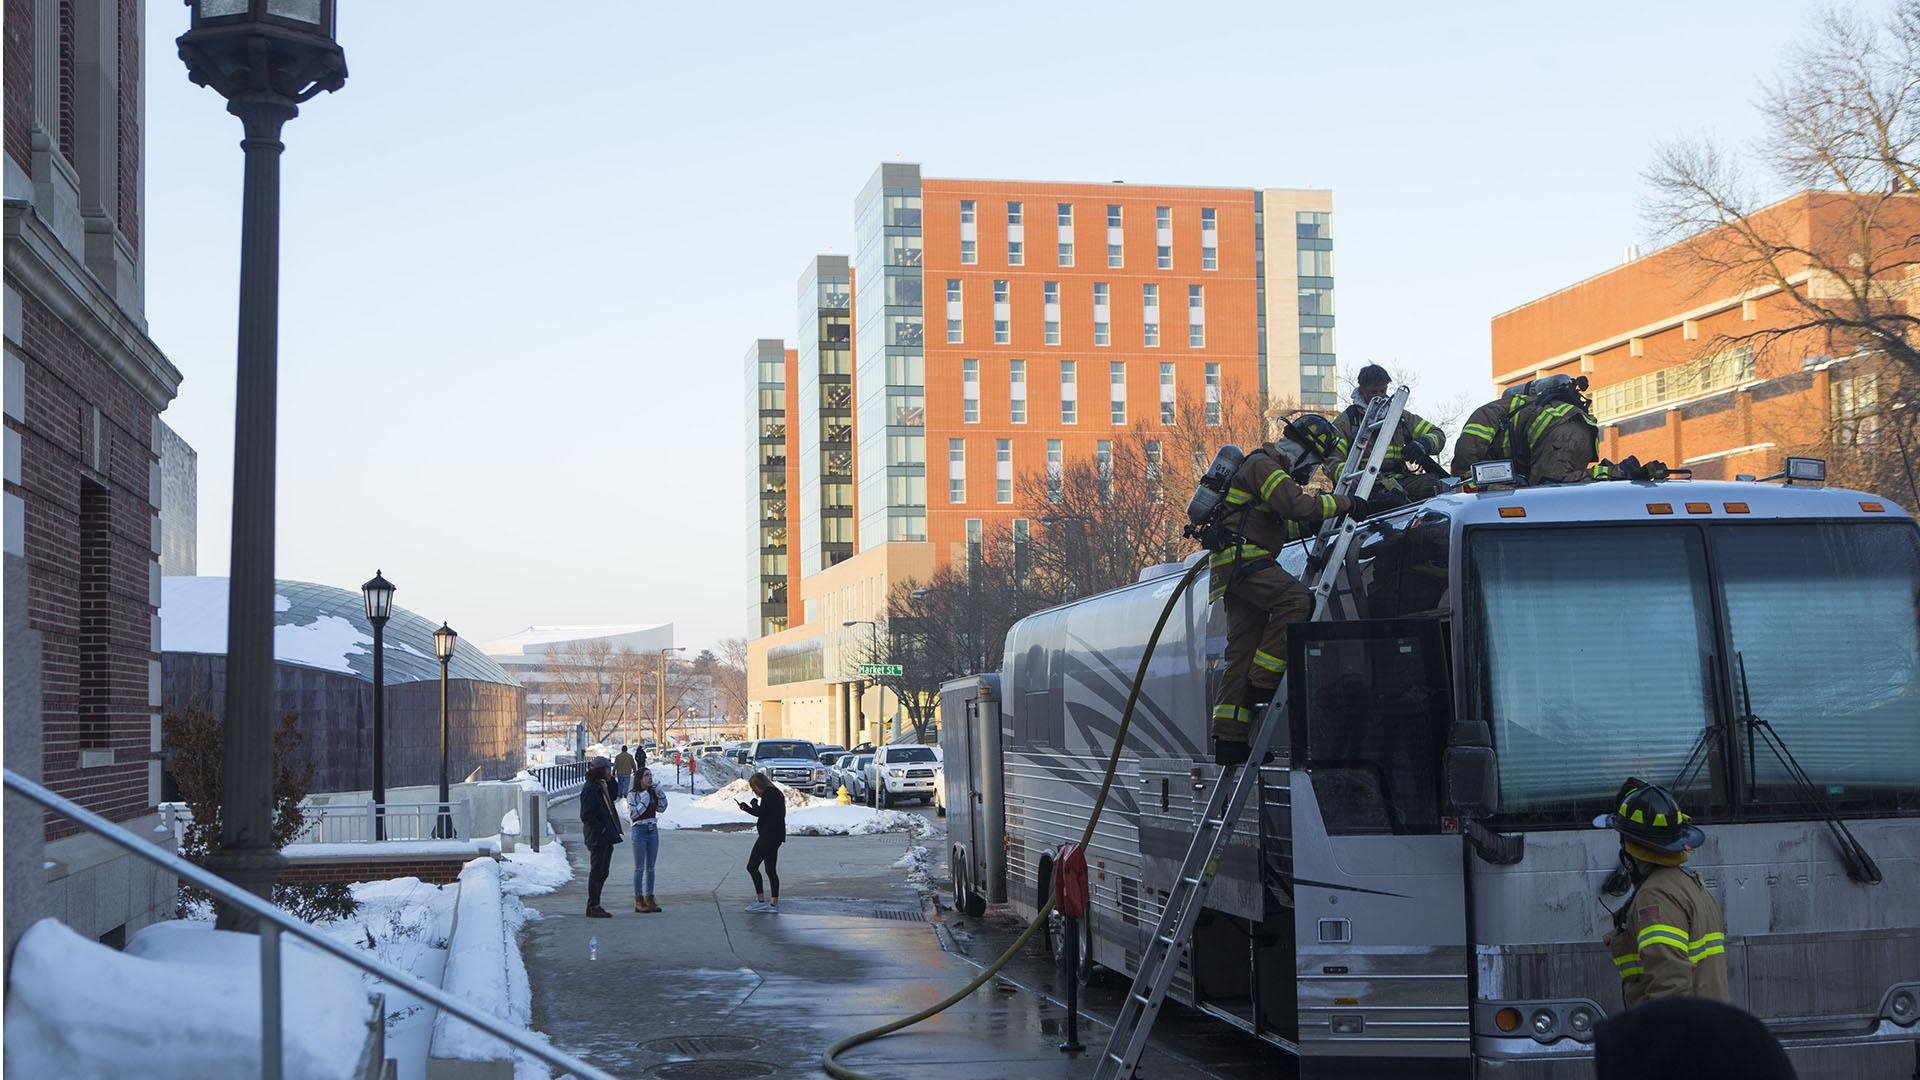 Grammy Award winning band Portugal. The Man's tour bus is seen outside the IMU on Tuesday, Feb. 13, 2018. The tour bus caught on fire Tuesday, preceding the band's sold performance in the IMU Main Lounge Tuesday night. (Lily Smith/The Daily Iowan)